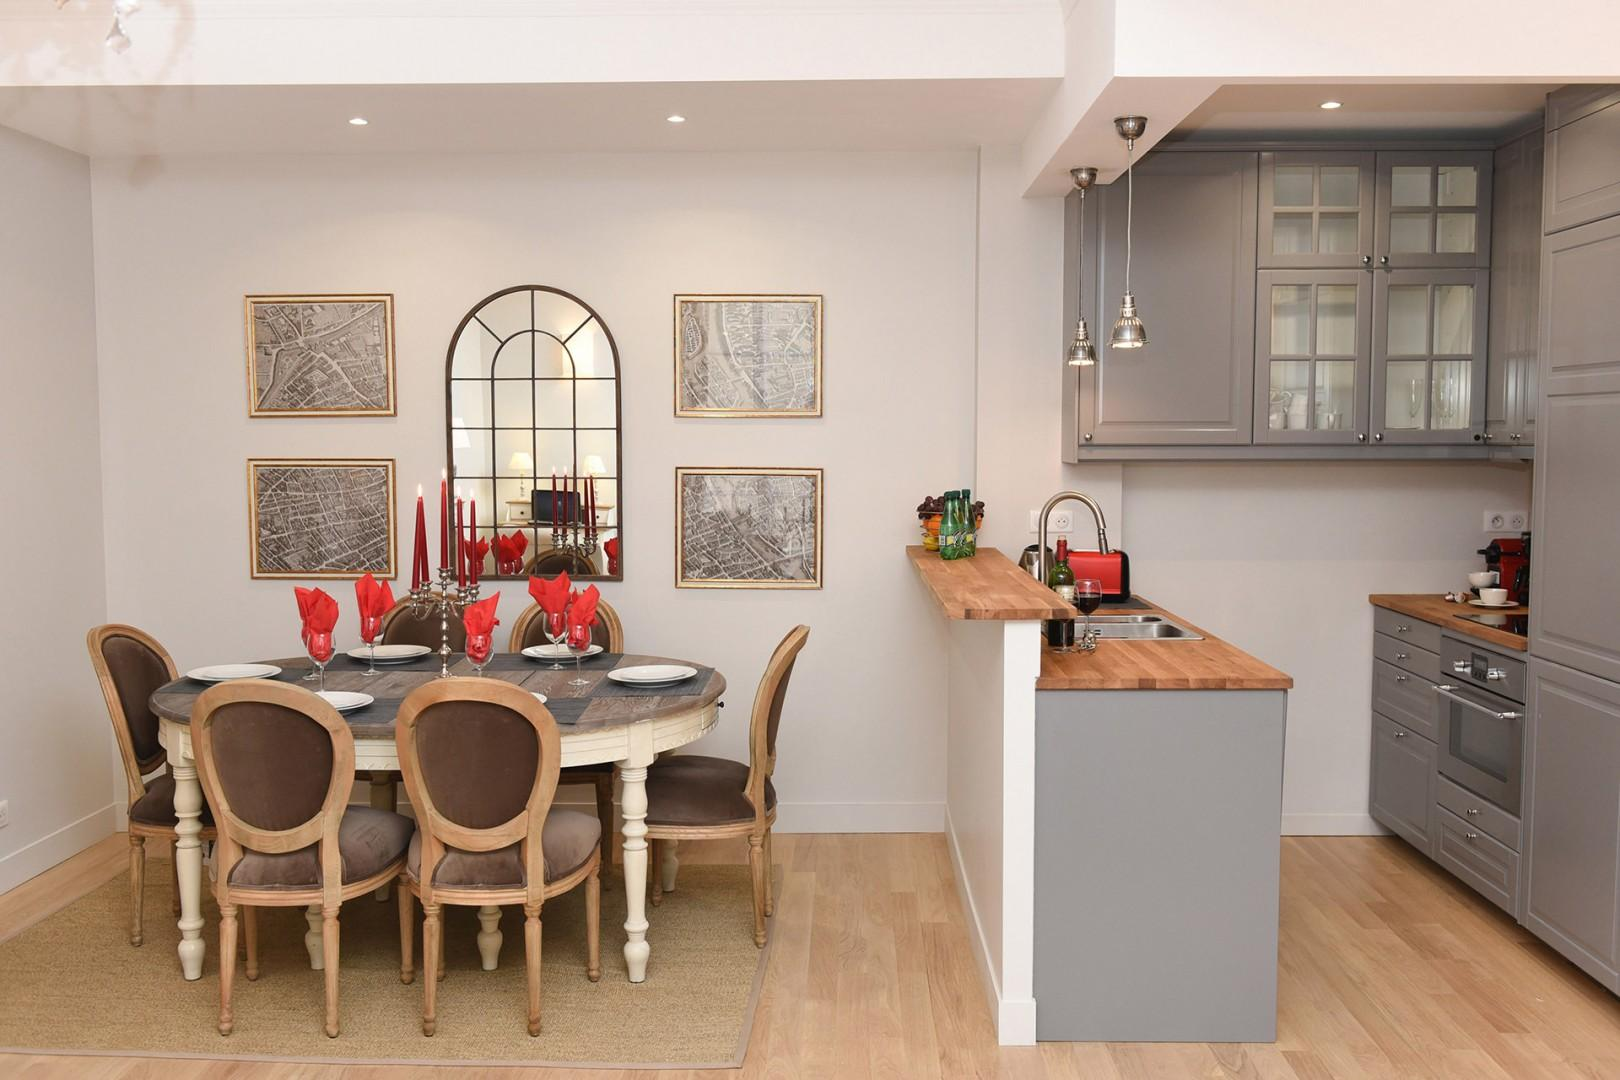 The open-plan kitchen and dining area is great for easy serving.